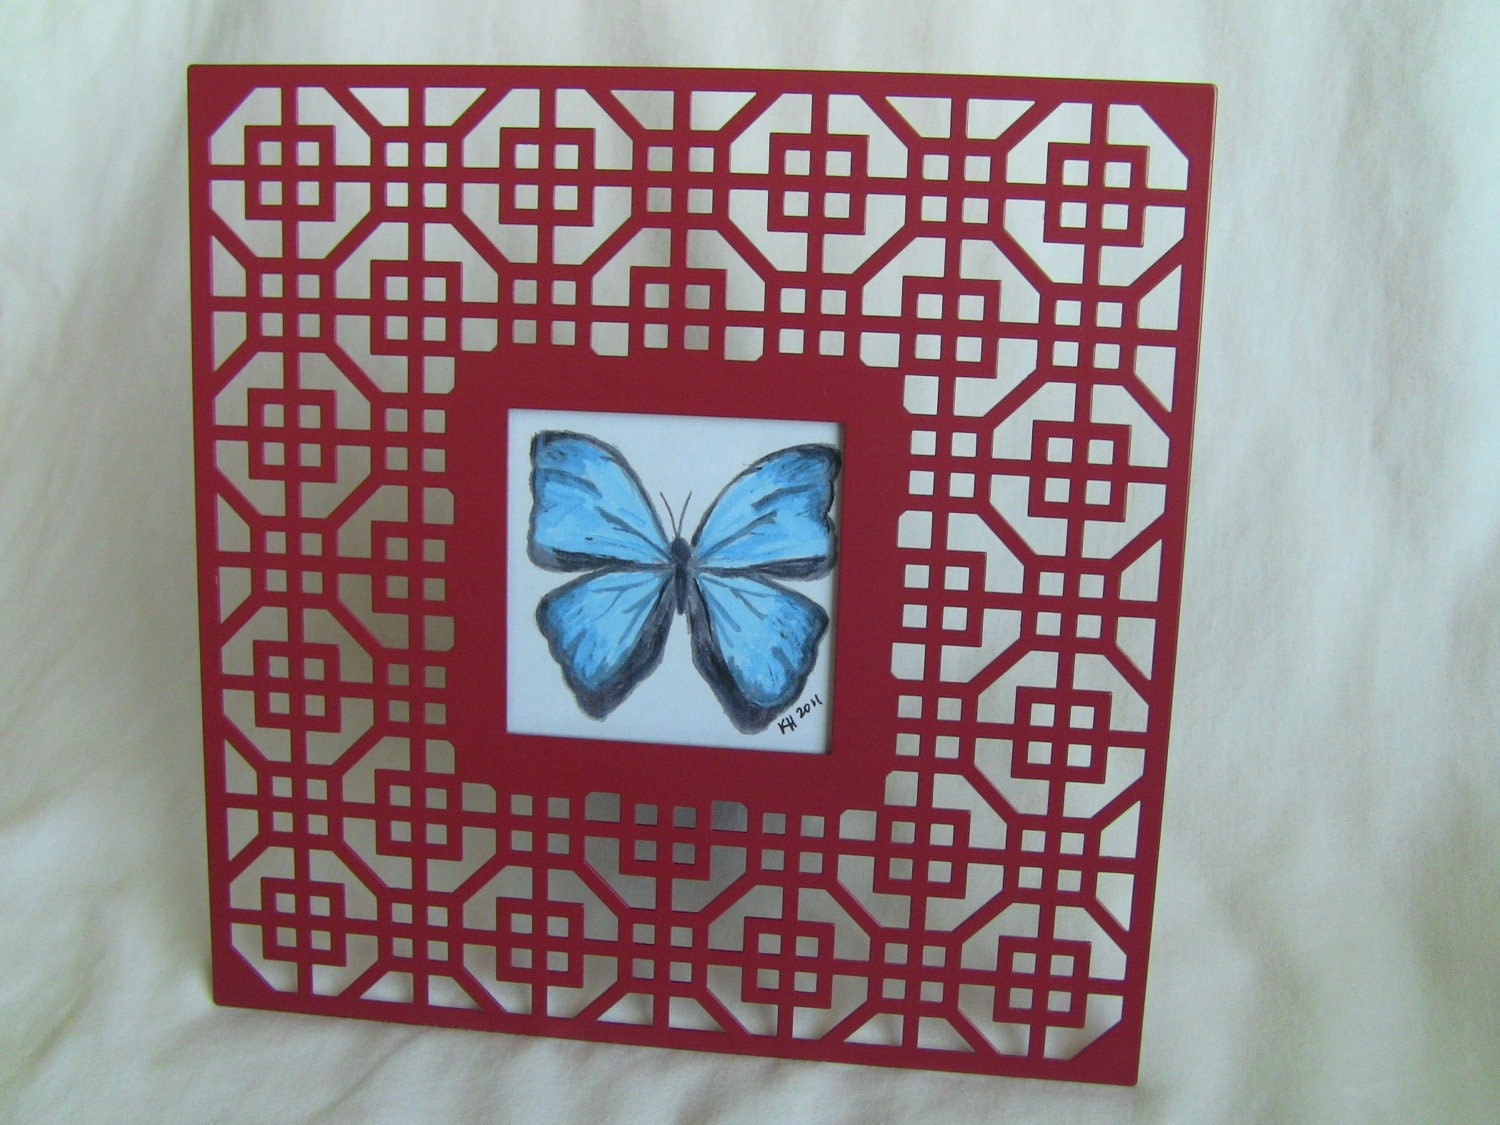 Hand-painted blue butterfly, art deco red frame, butterfly image square  2.5 x 2.5